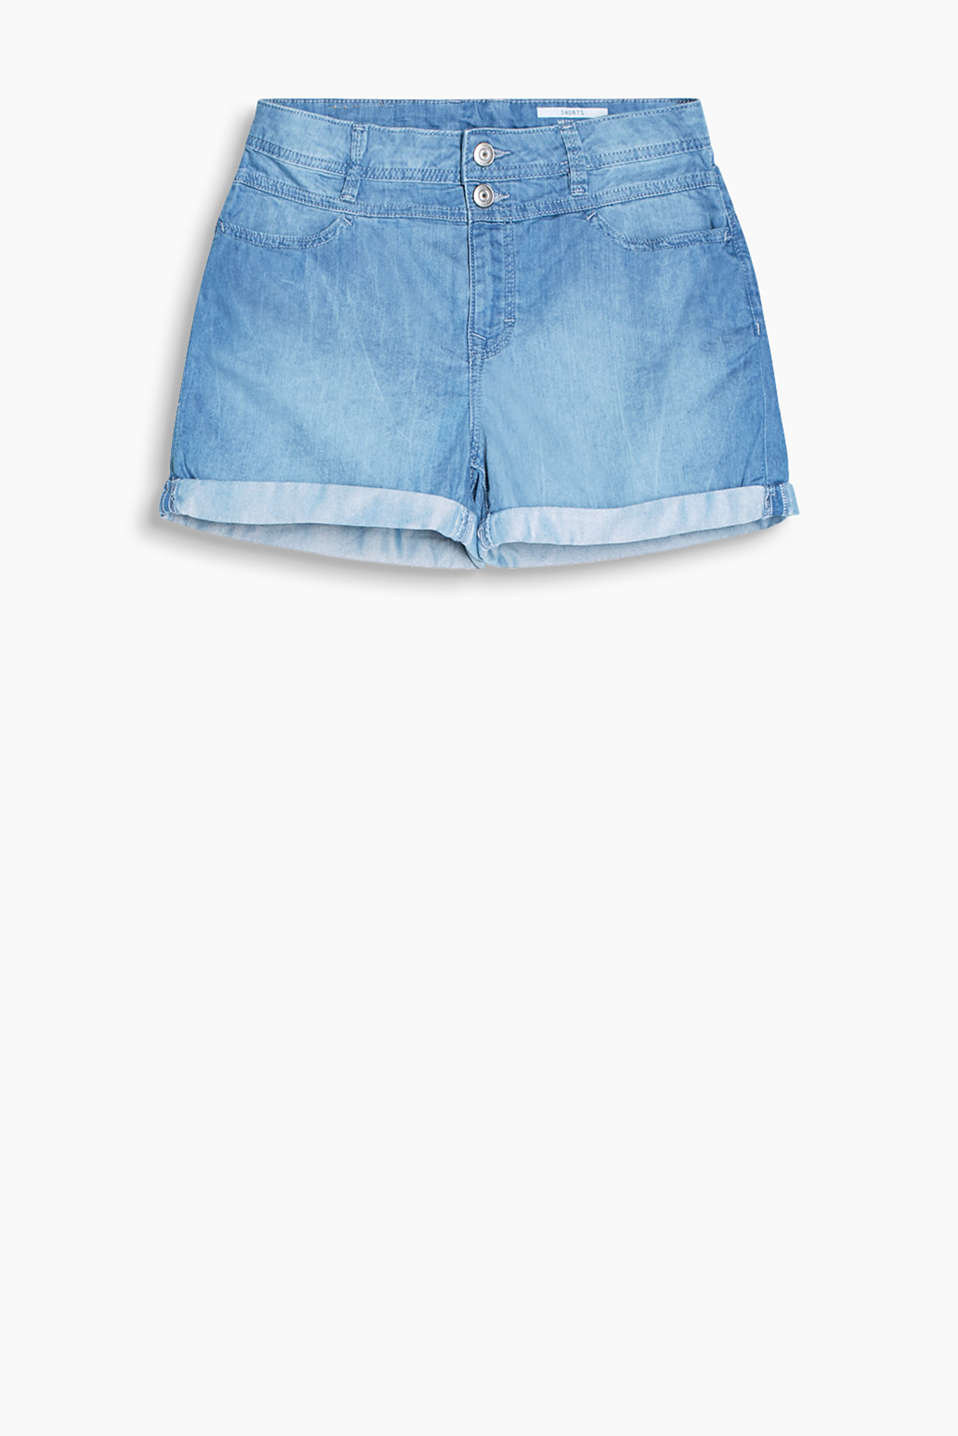 Casual shorts in lightweight, summer denim with a waist yoke and fixed turn-ups